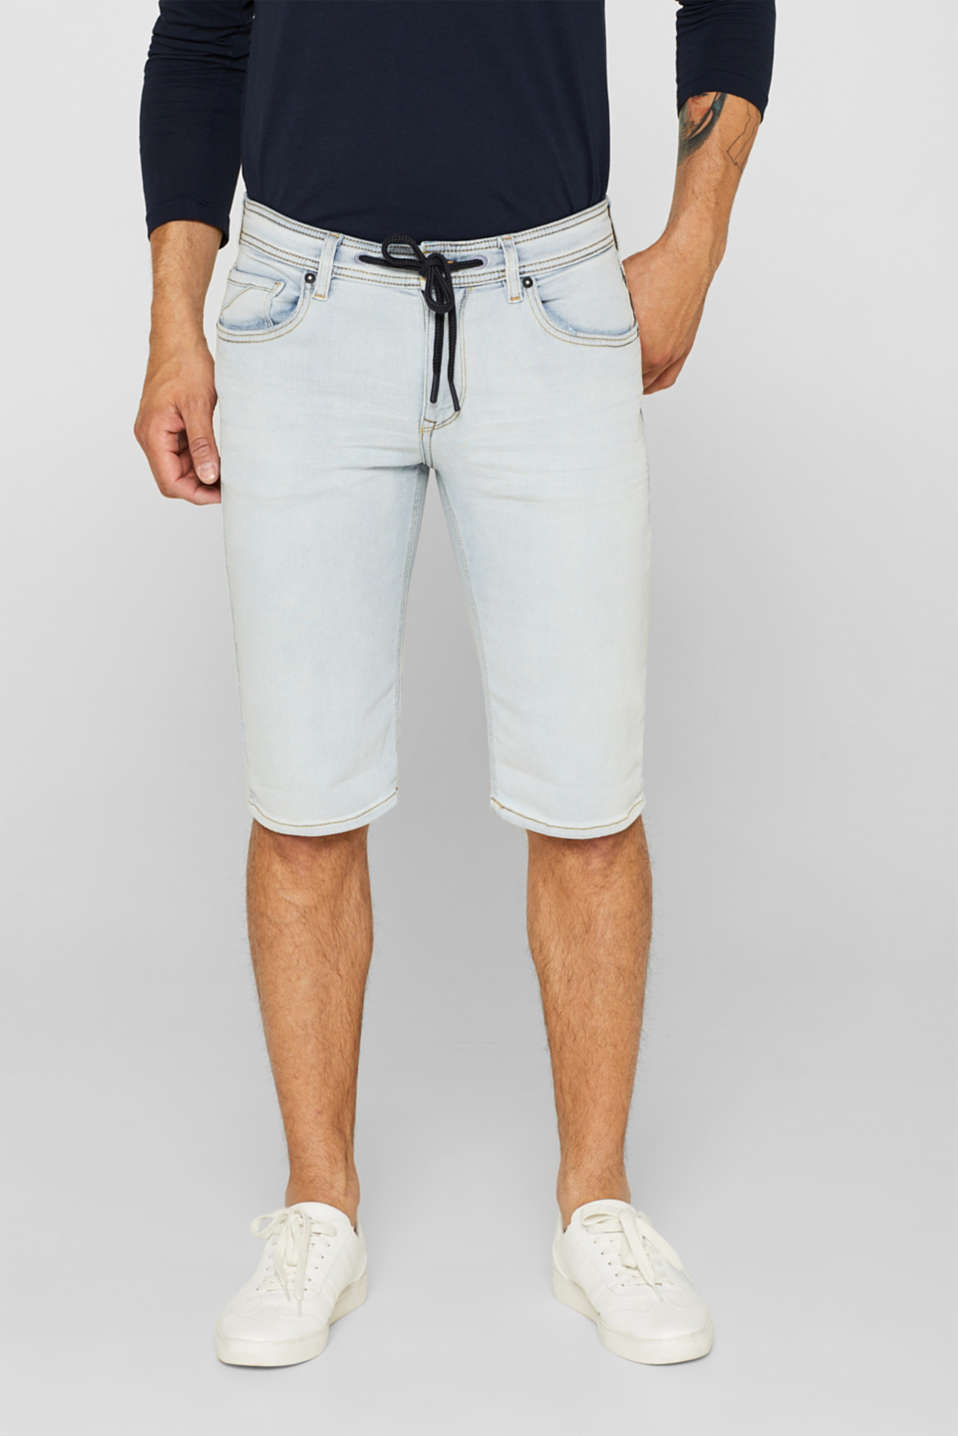 edc - Superstretch-Jeansshorts in Jogger-Qualität